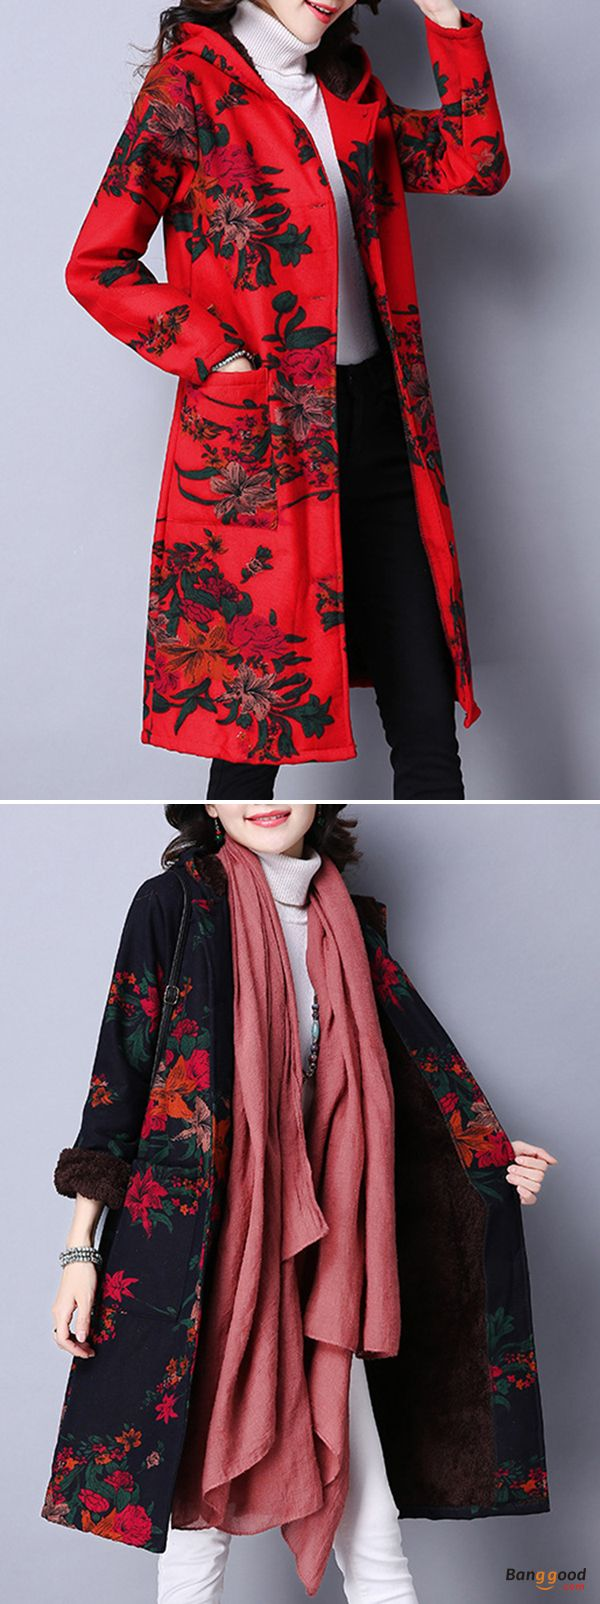 US$53.69 + Free shipping. Size: XS~2XL. Material: Cotton, Polyester. Fall in love with elegant and casual style! Folk Style Women Hooded Long Sleeve Floral Printed Velvet Warm Coat.